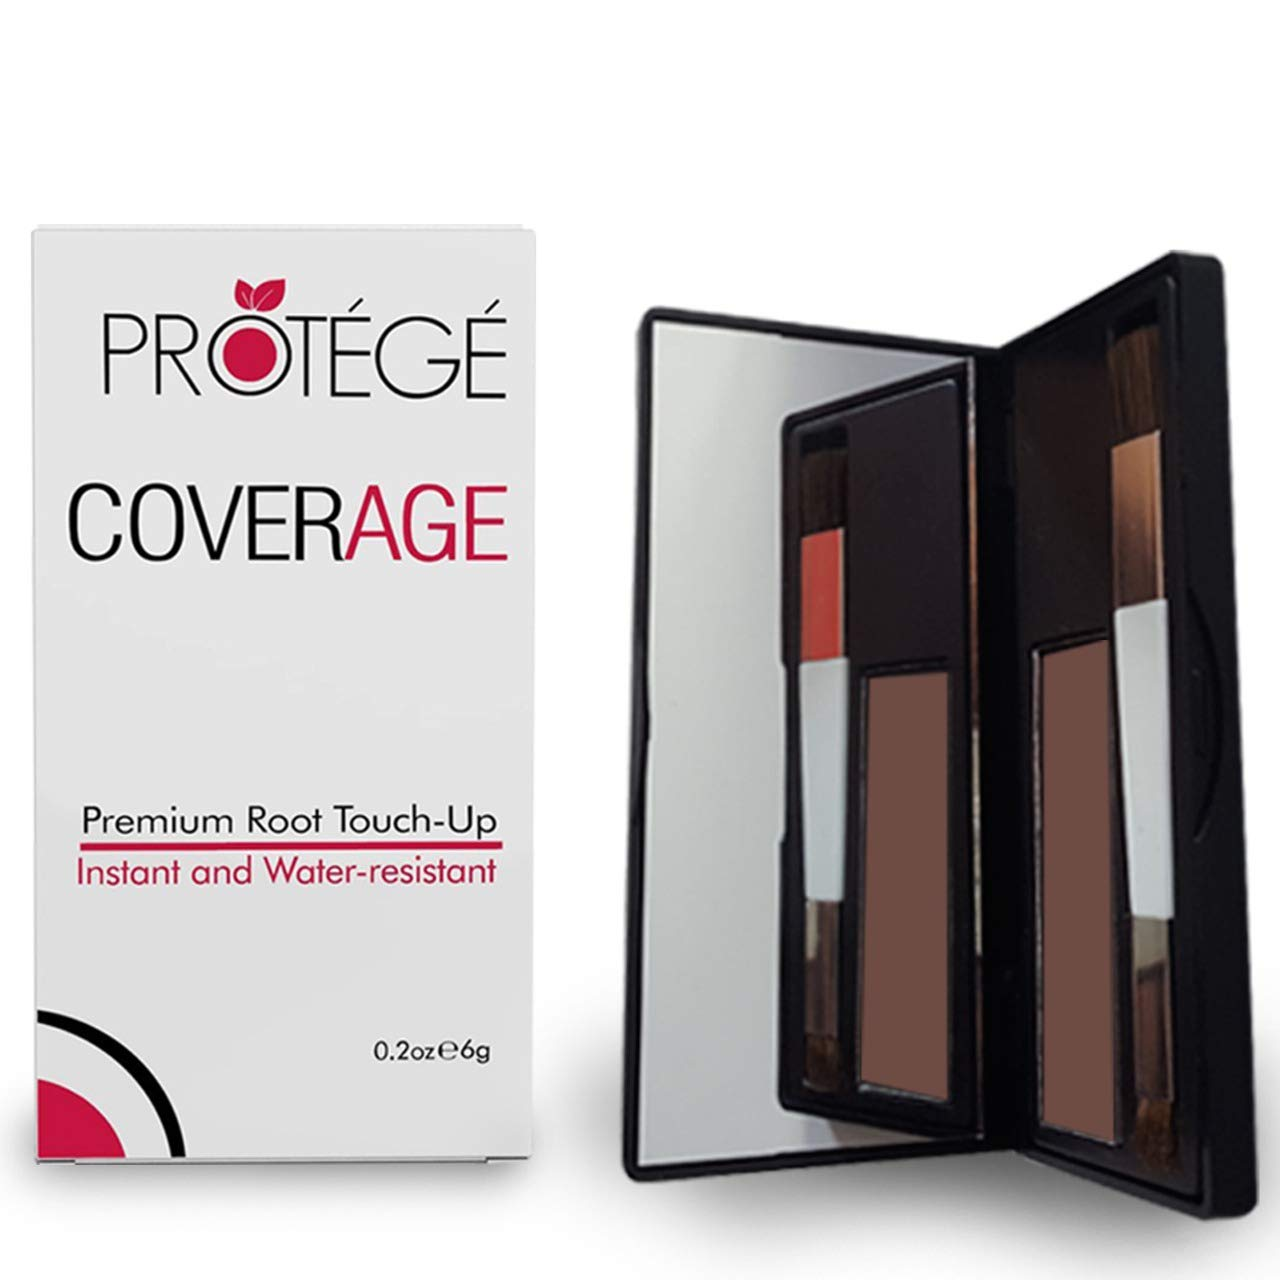 Premium Root Touch Up - CoverAge - Instant Root Concealer to Cover Roots and Grays Between Salon Trips - Water Resistant - Light Brown